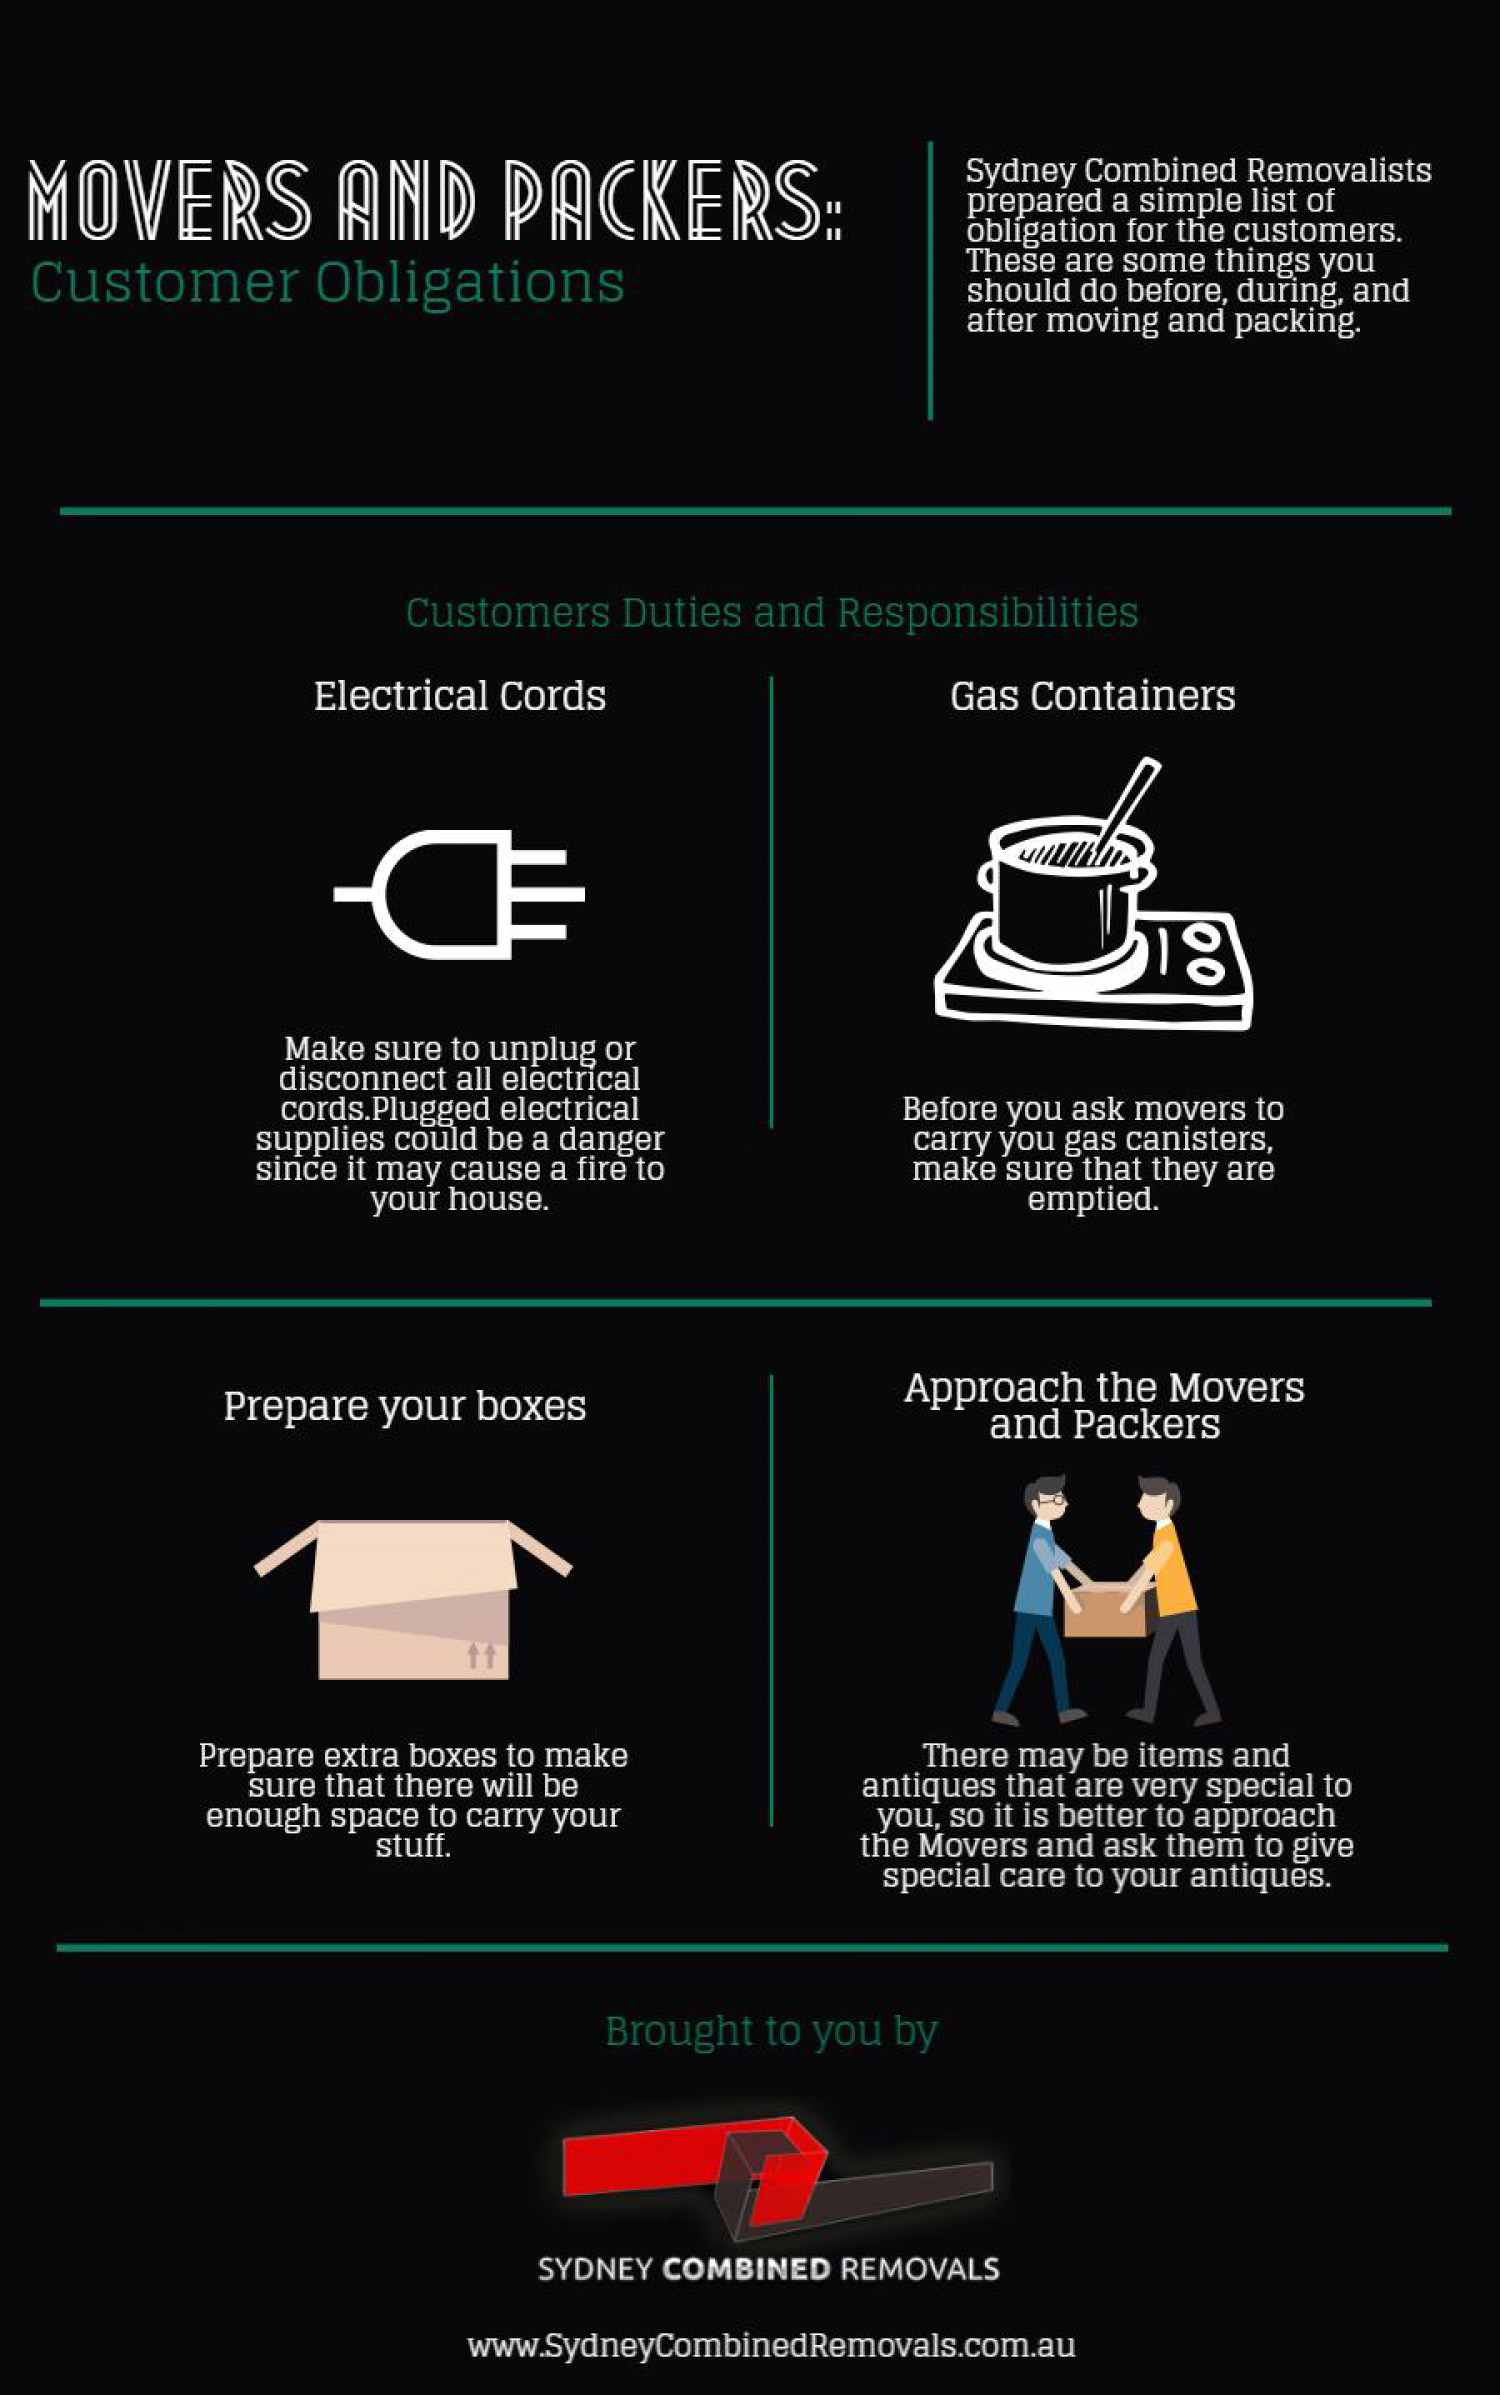 Movers and Packers: Customer Obligations Infographic